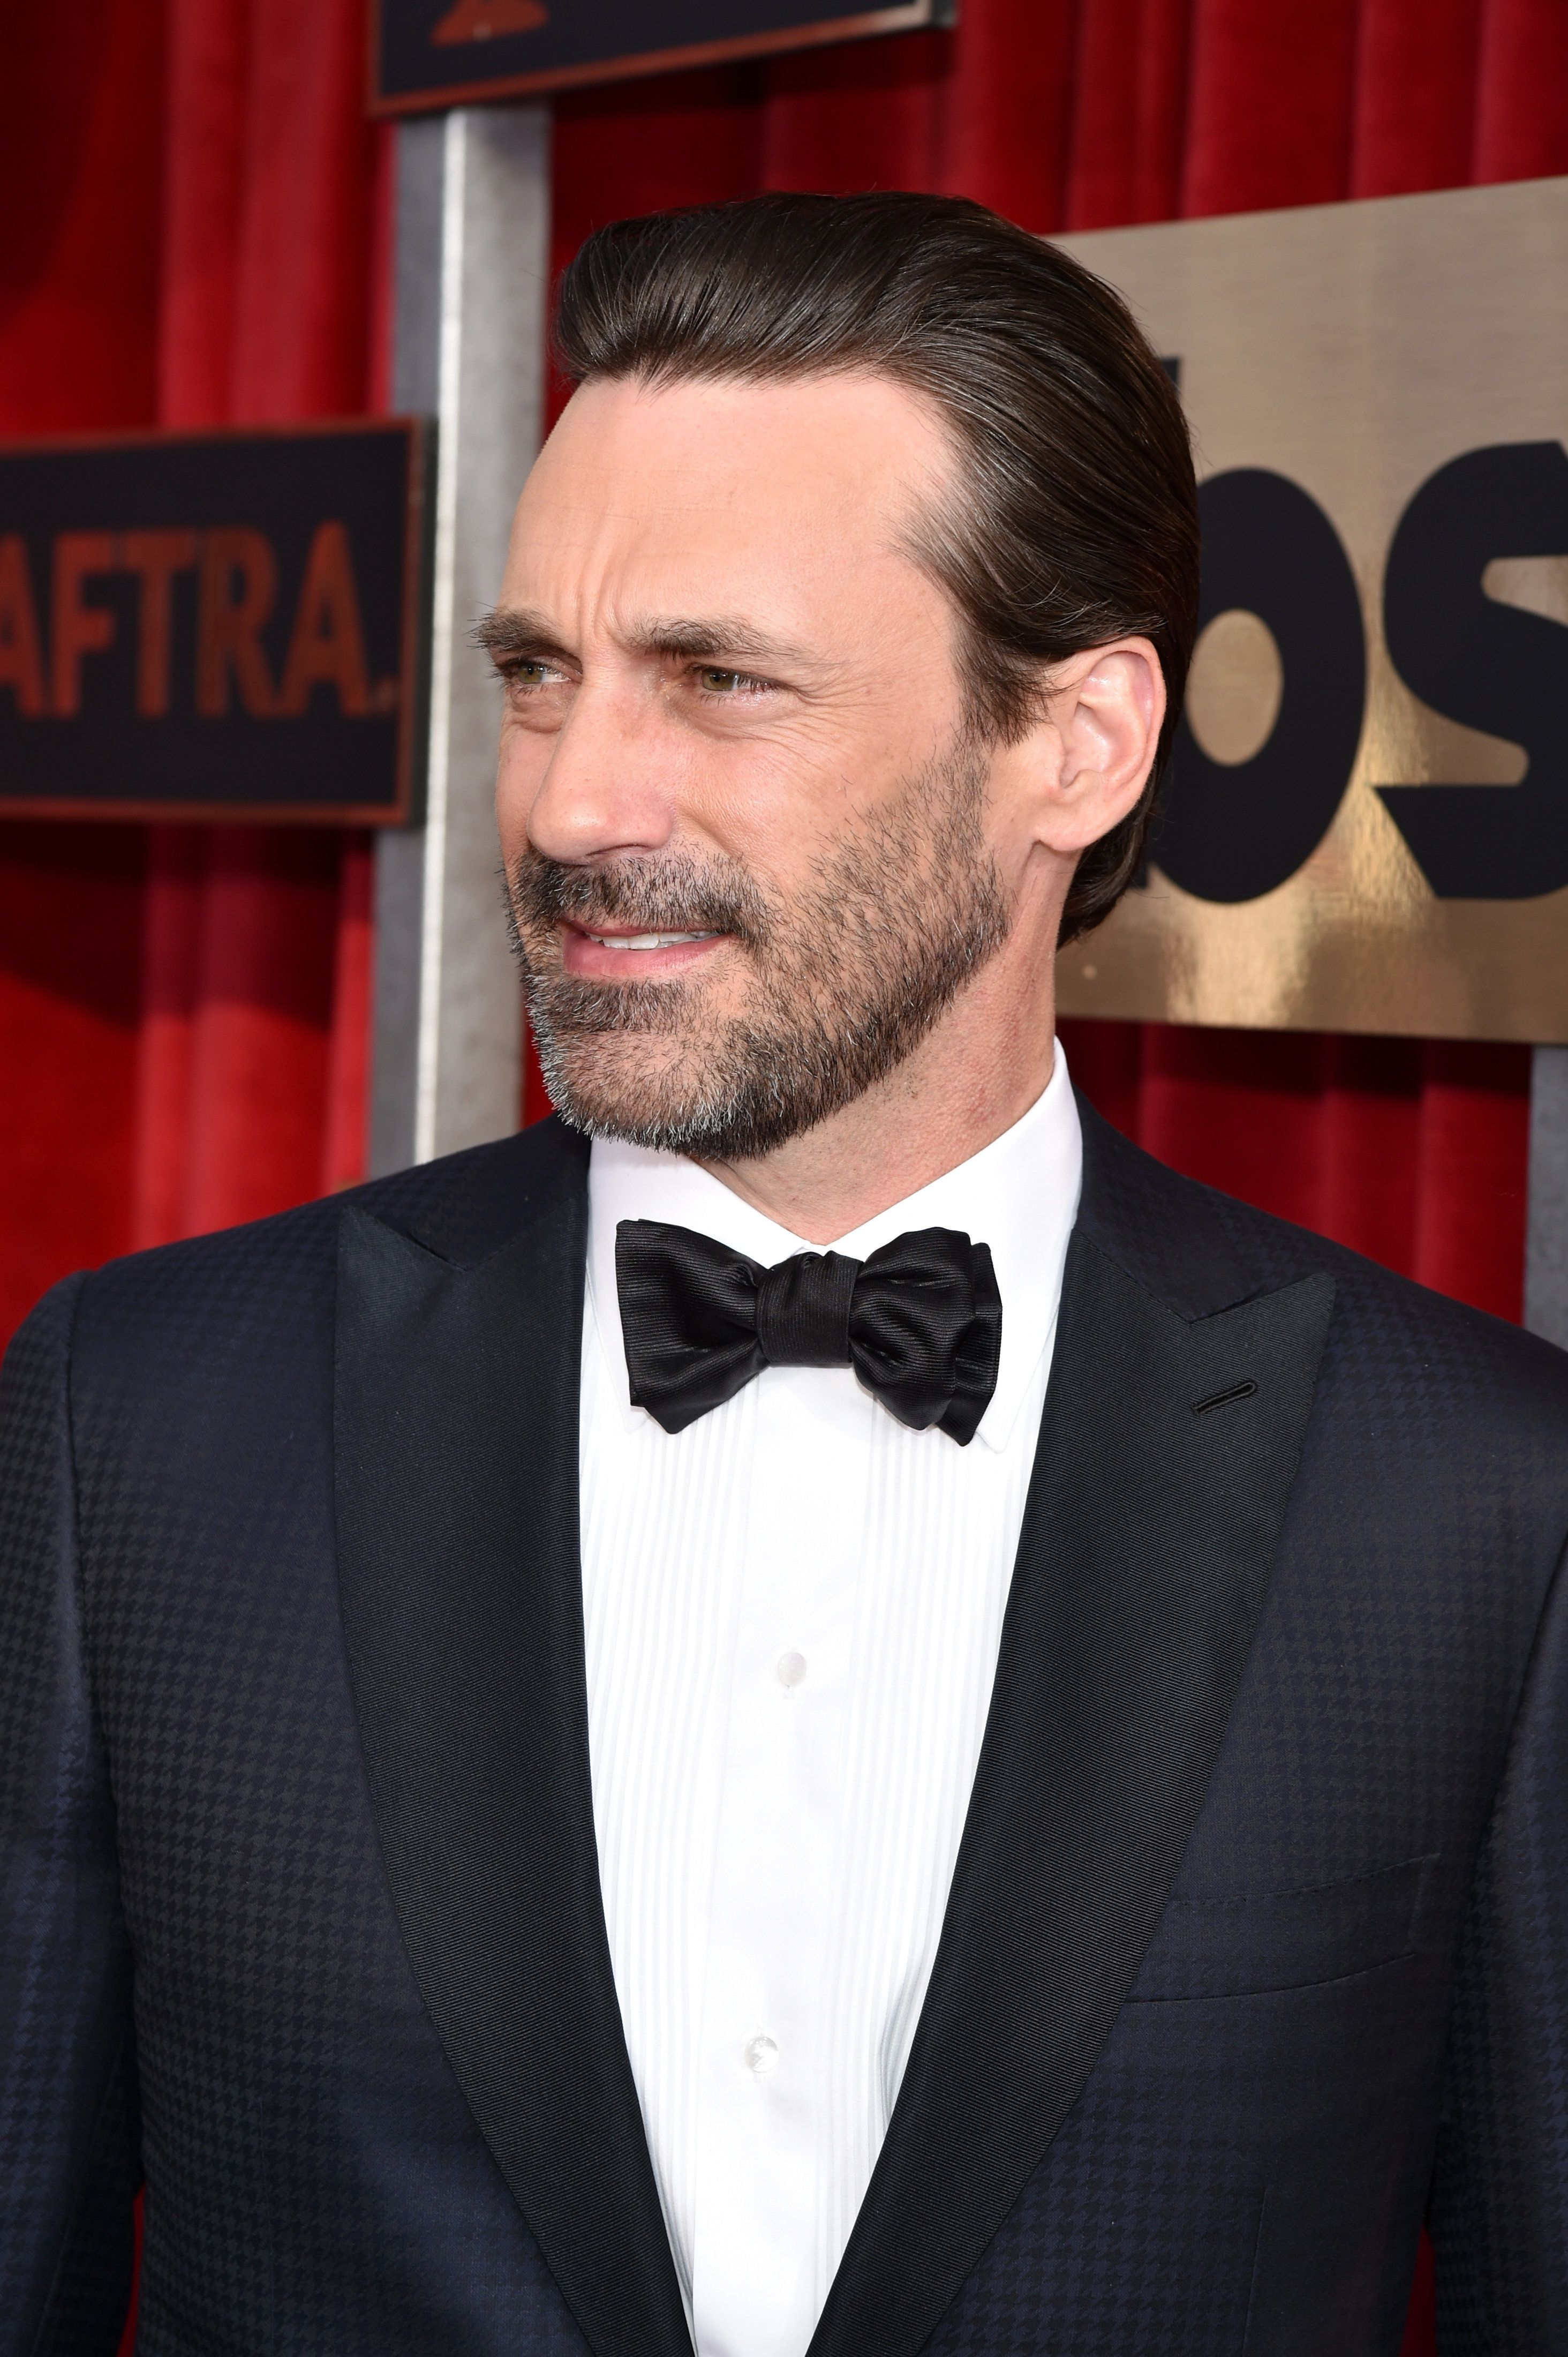 LOS ANGELES, CA - JANUARY 30:  Actor Jon Hamm attends the 22nd Annual Screen Actors Guild Awards at The Shrine Auditorium on January 30, 2016 in Los Angeles, California.  (Photo by John Shearer/Getty Images for People Magazine)